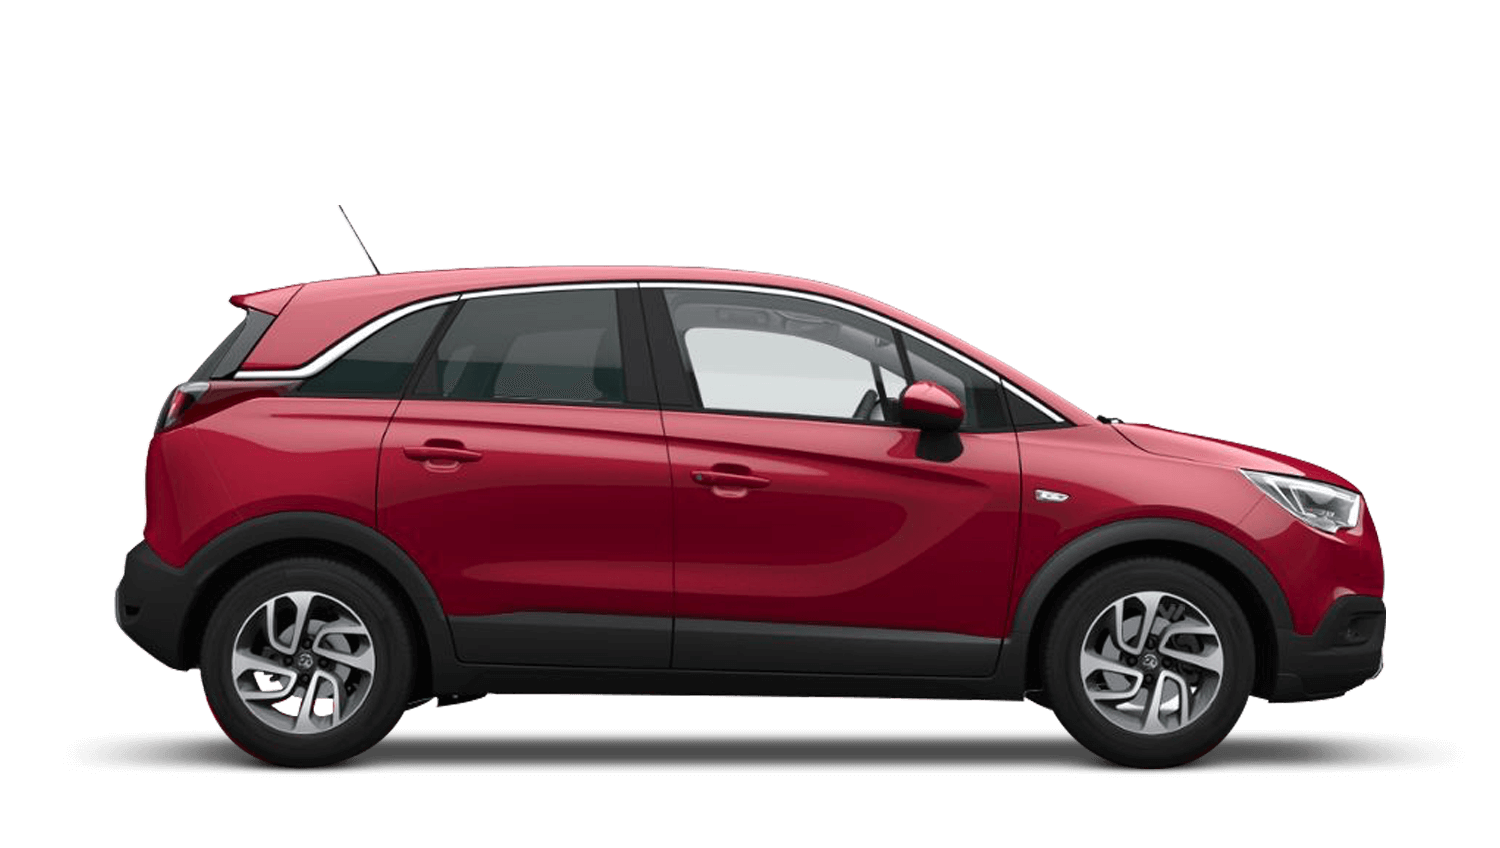 Hot Red (Premium) Vauxhall Crossland X